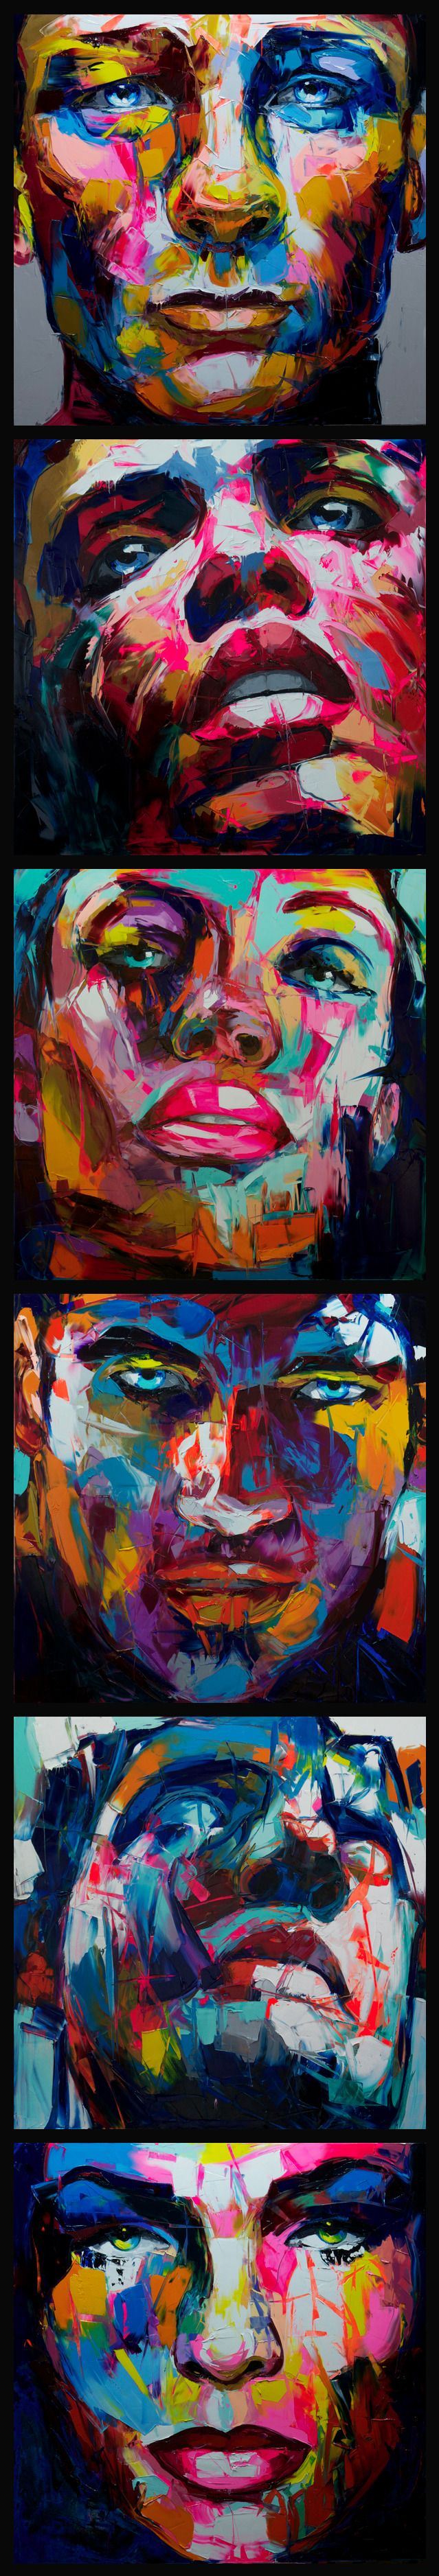 By NIELLY FRANCOISE Steph, we really should go to like an art exhibit or galleria. I really love seeing art and I can tell you do too:)) @sjlogan